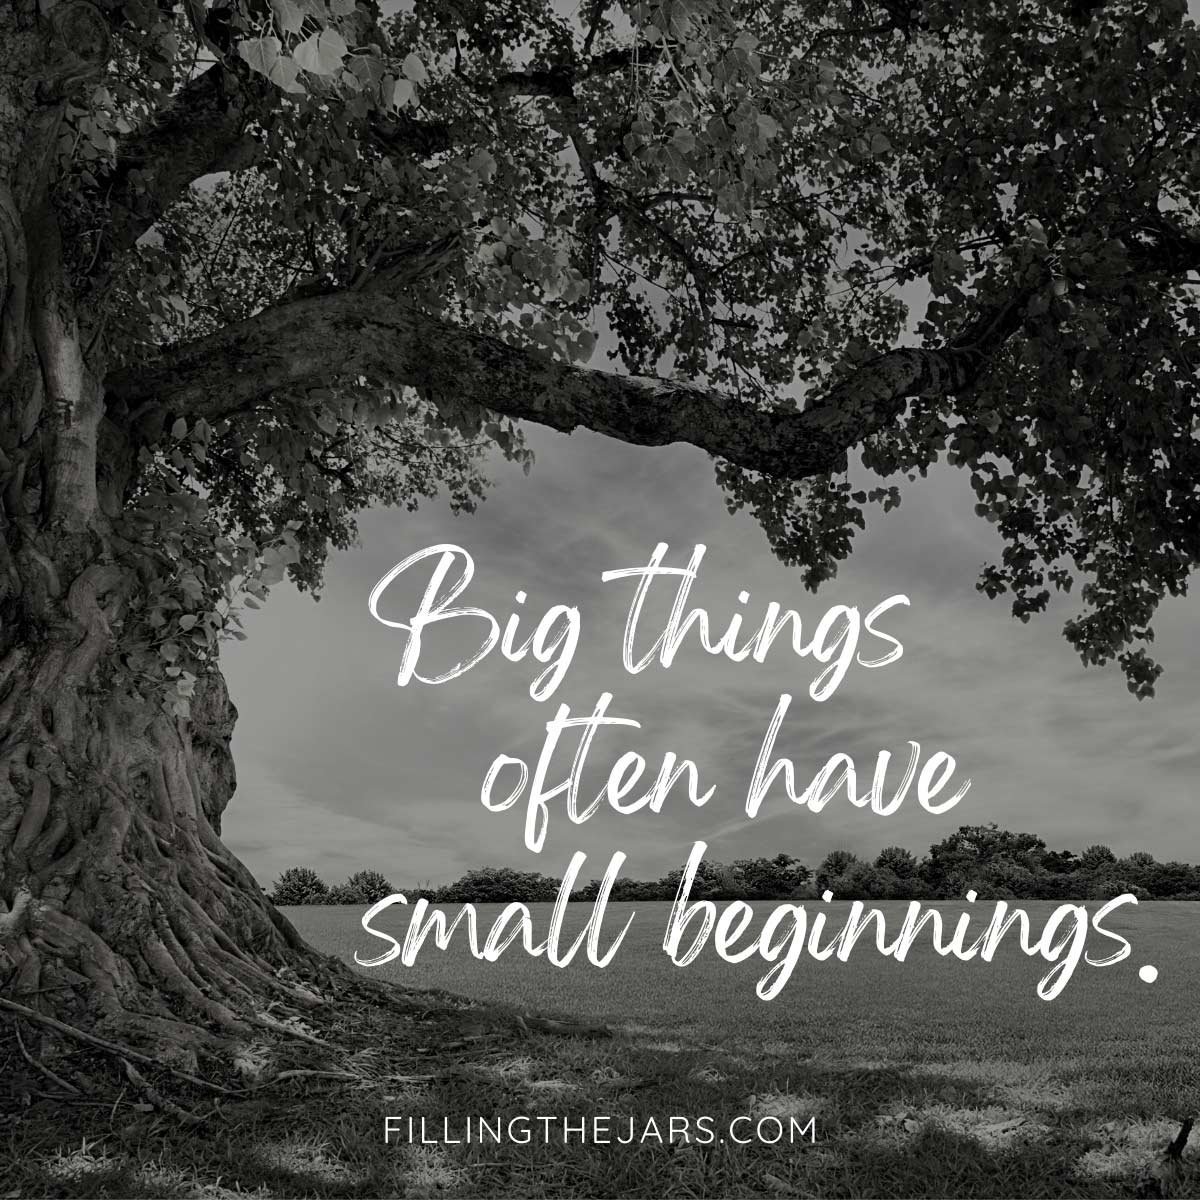 Big things often have small beginnings quote in white script text on black and white background of giant tree in field.